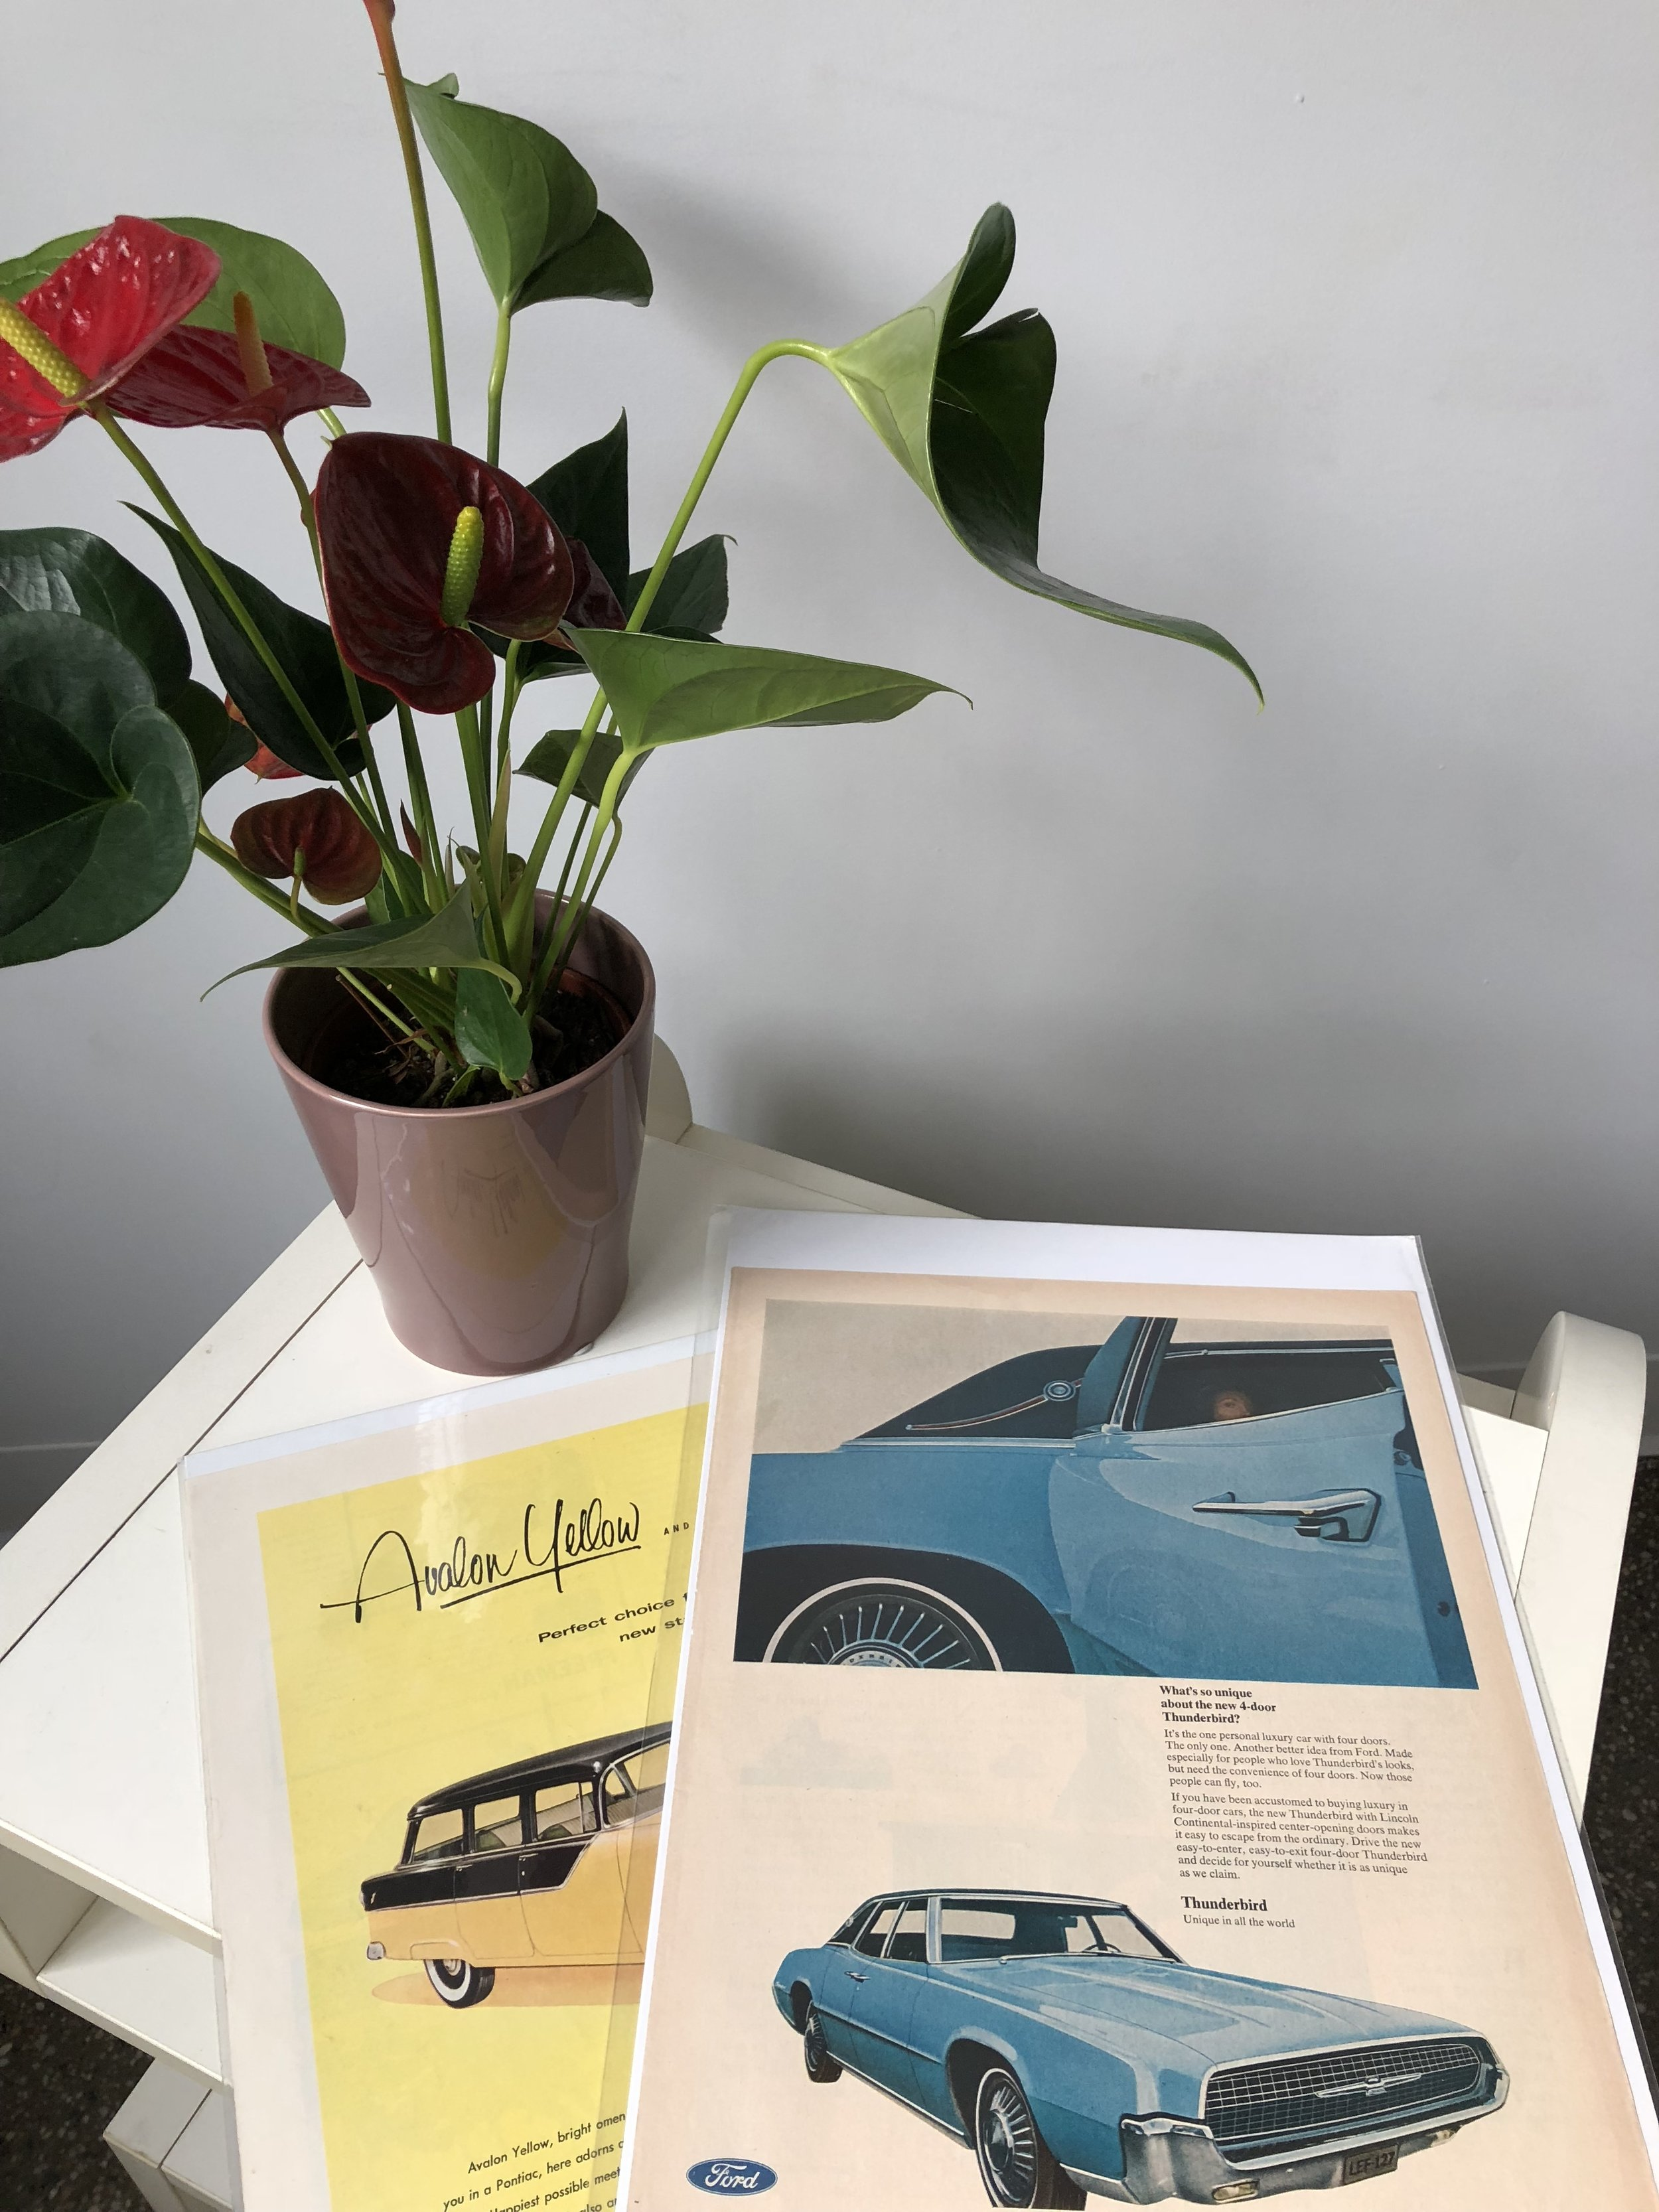 Vintage Prints - From old magazine clippings to artwork… You can give it framed or unframed. Either way, an image or artwork can tie back to a memory and experience that you can share with another.